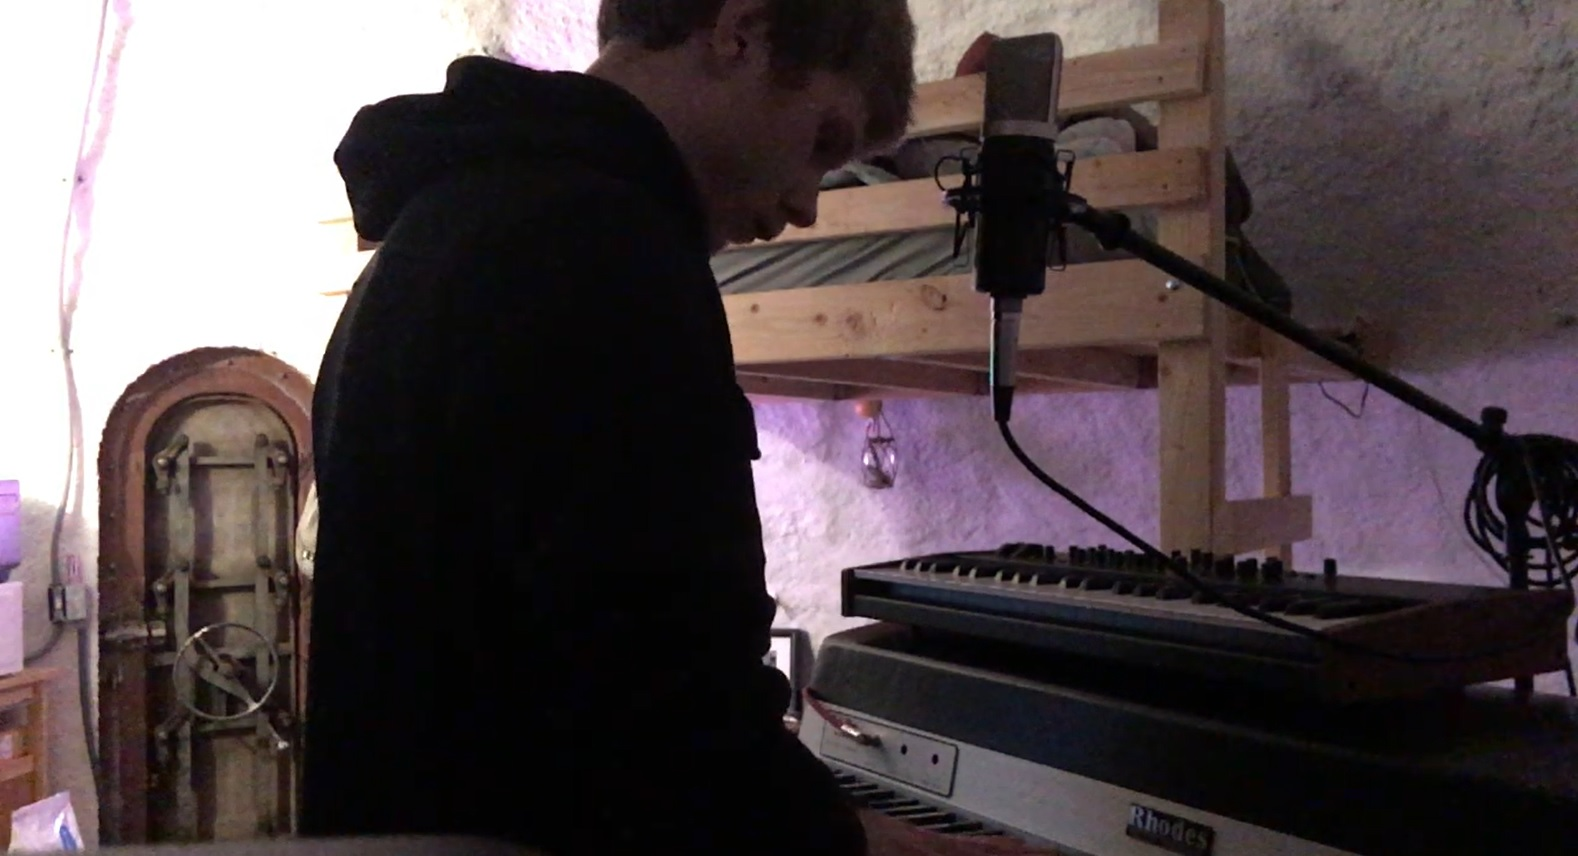 Max sketching out ideas on the band's Fender Rhodes.